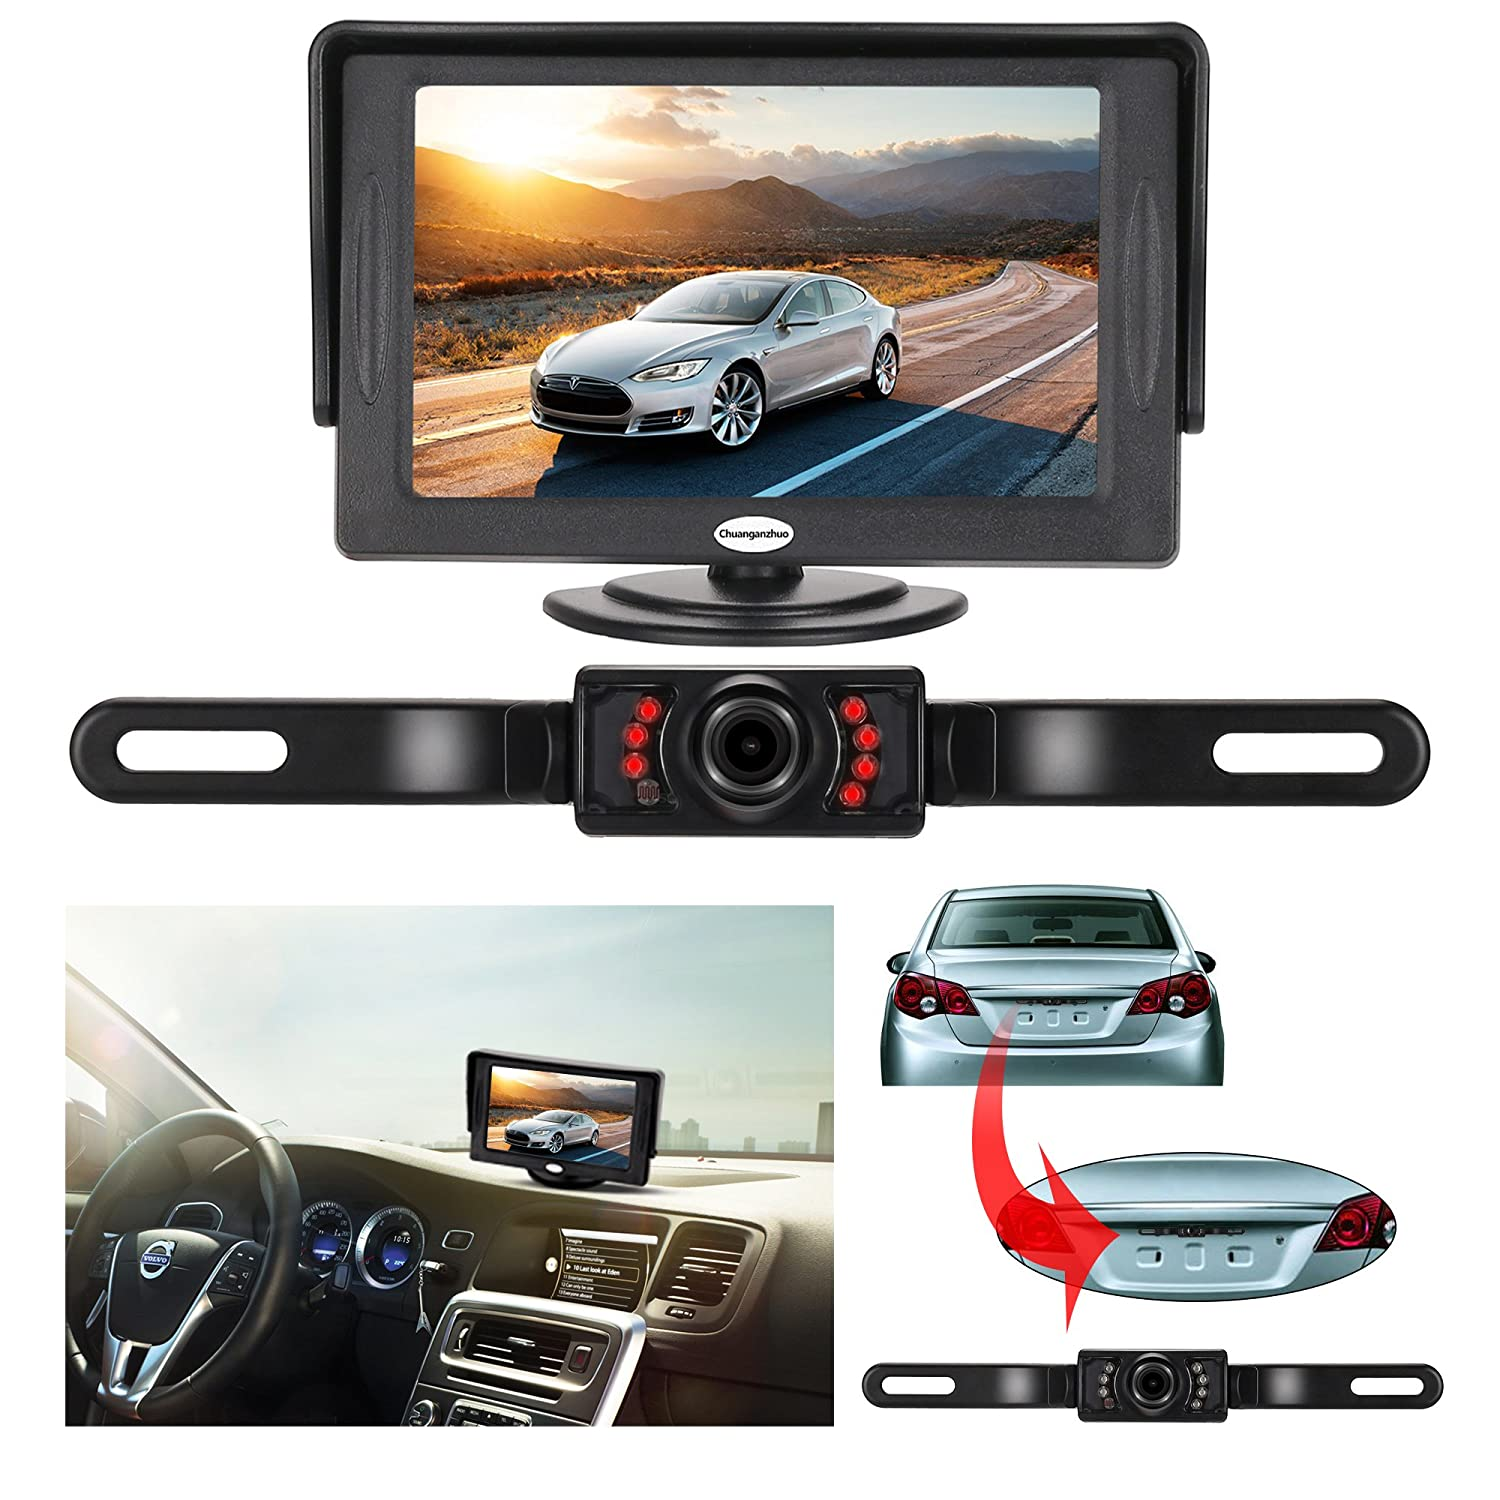 Best Backup Cameras for Cars